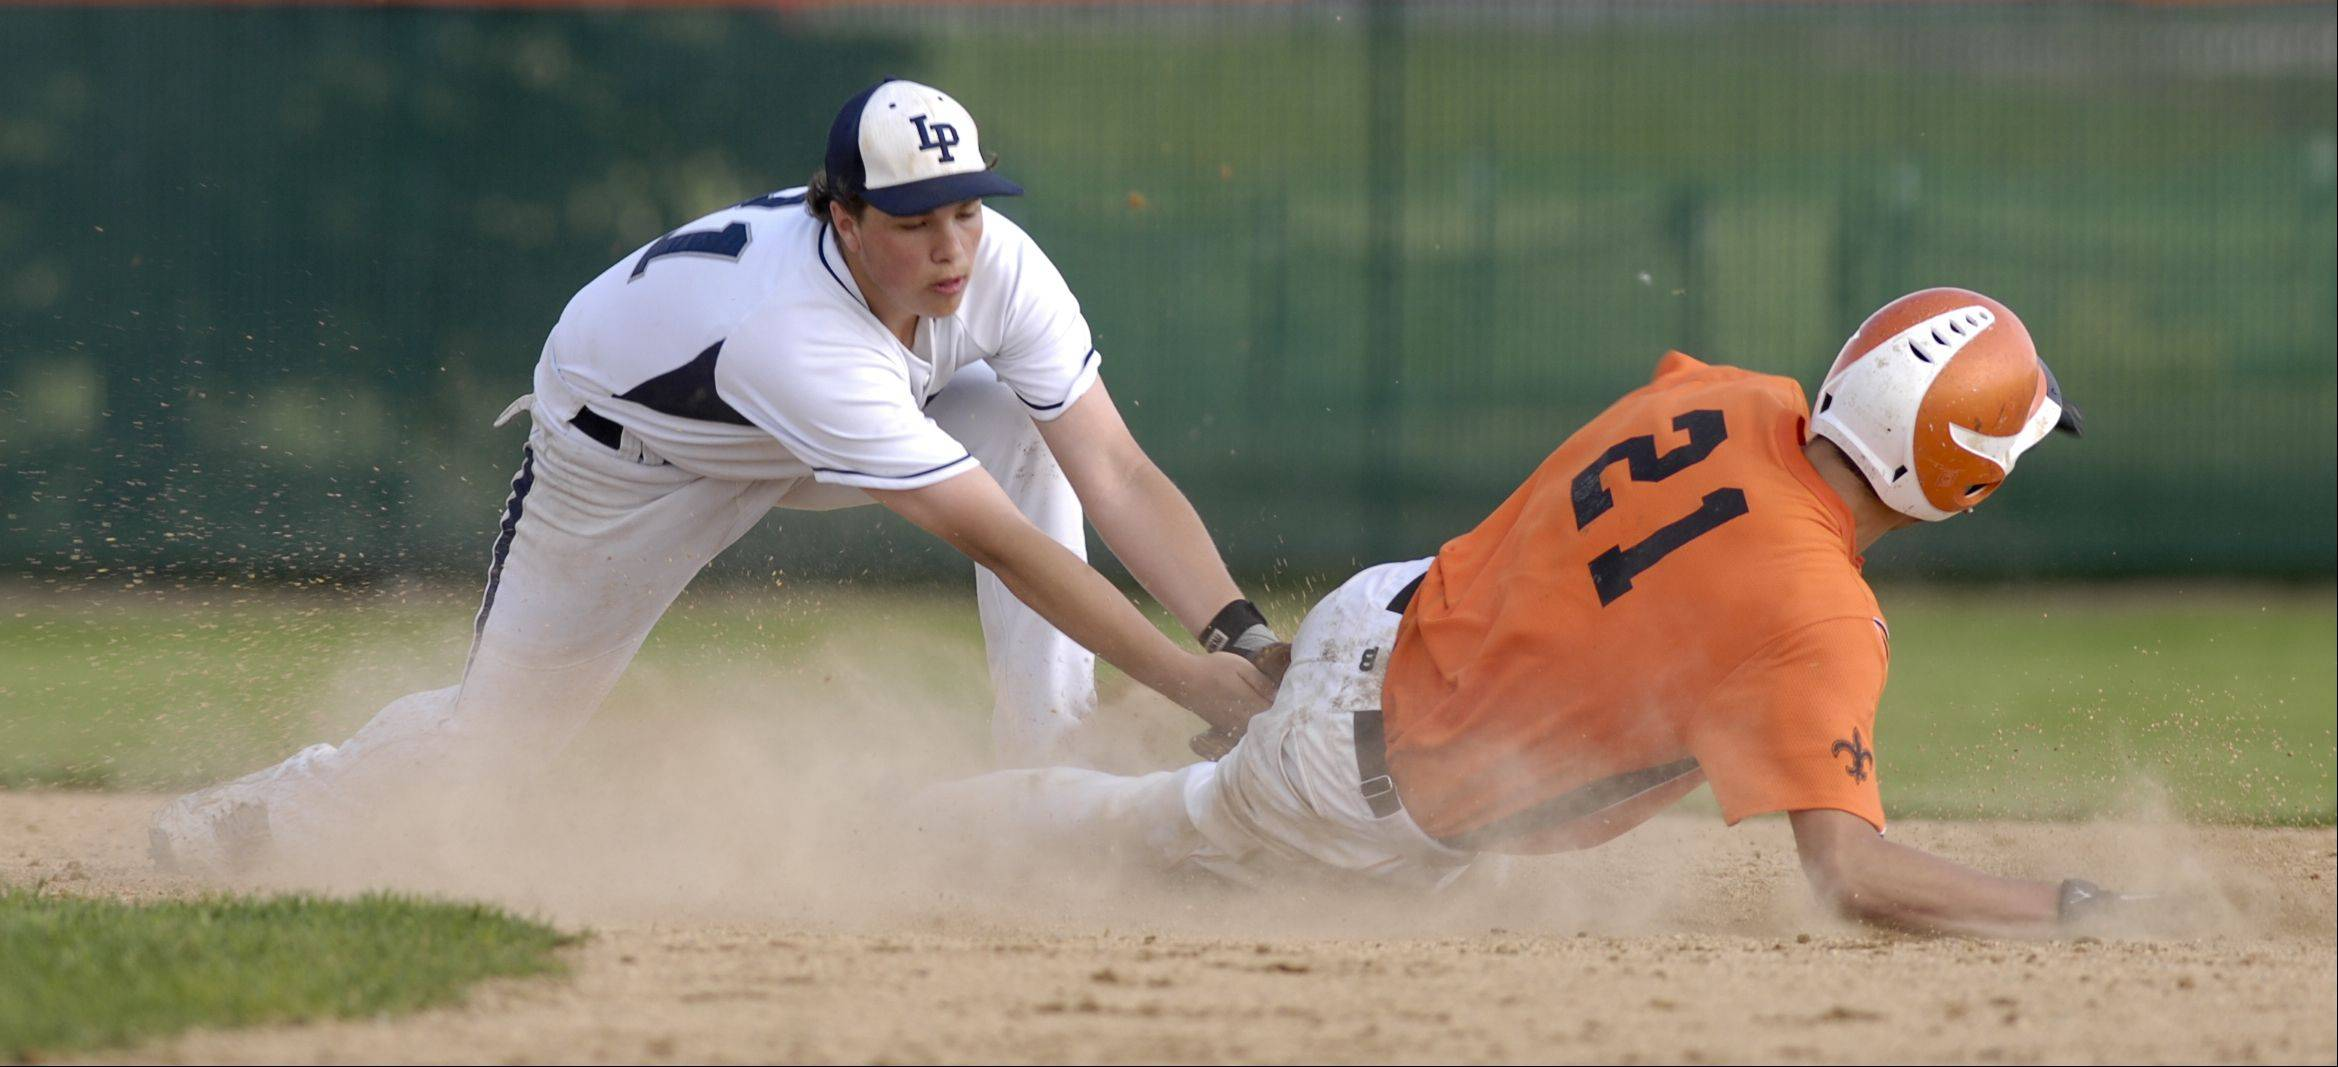 Ethan Schulz of Lake Park makes the out on Brannon Barry of St. Charles East baseball during at sectional semifinals, Monday in St. Charles.